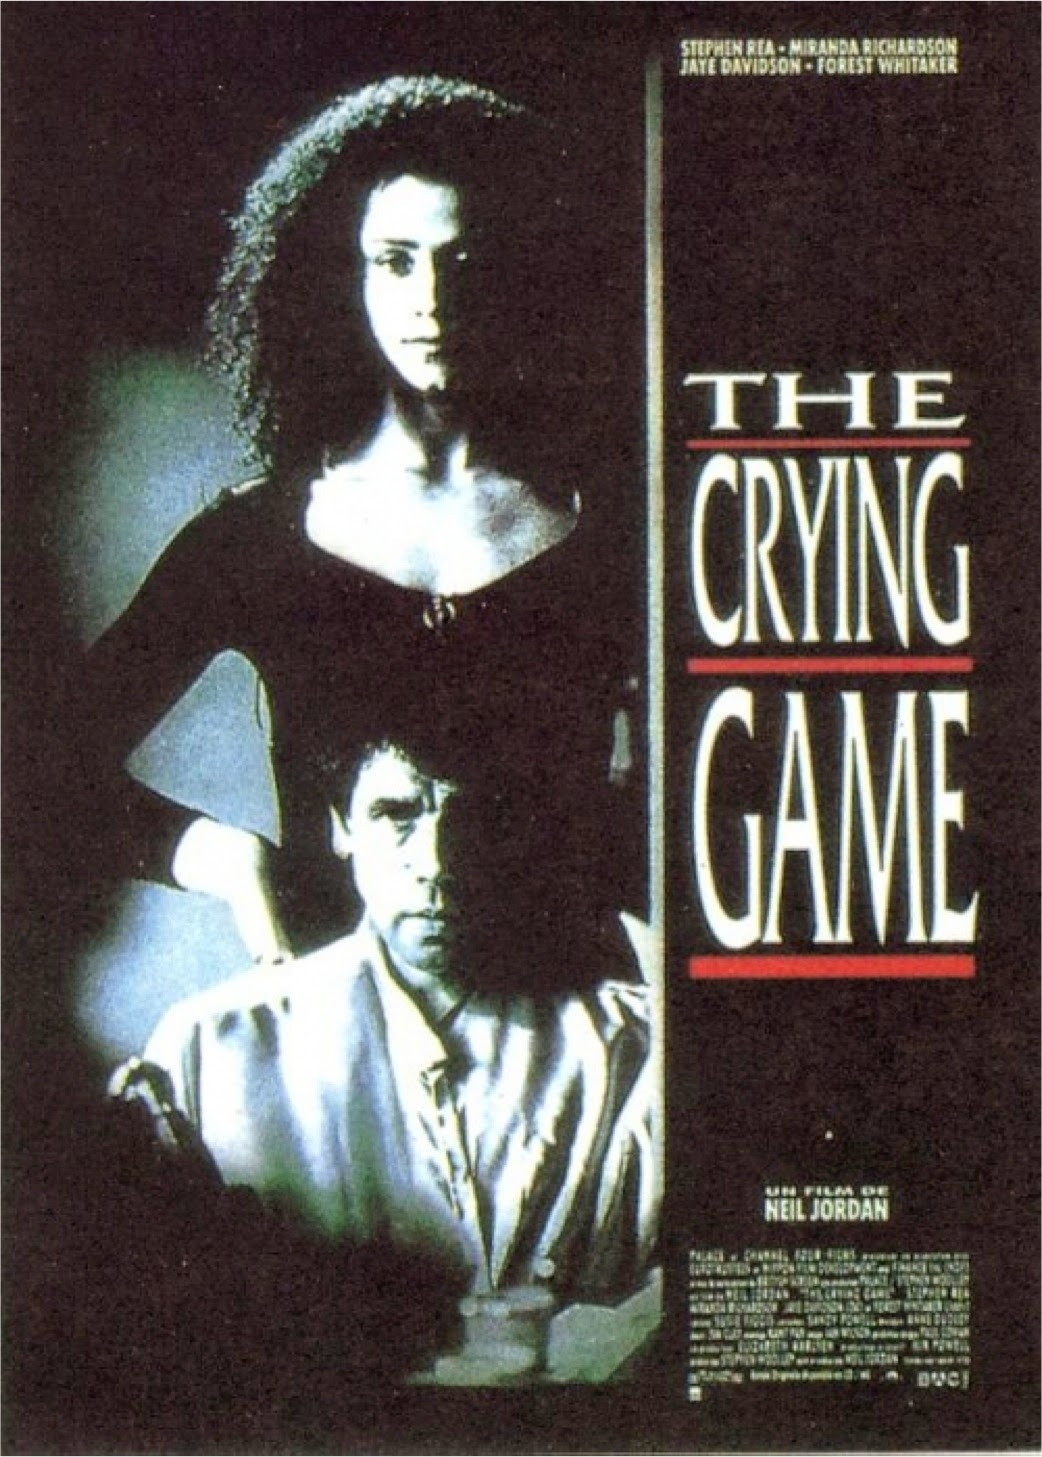 The crying game (27/07/2014)